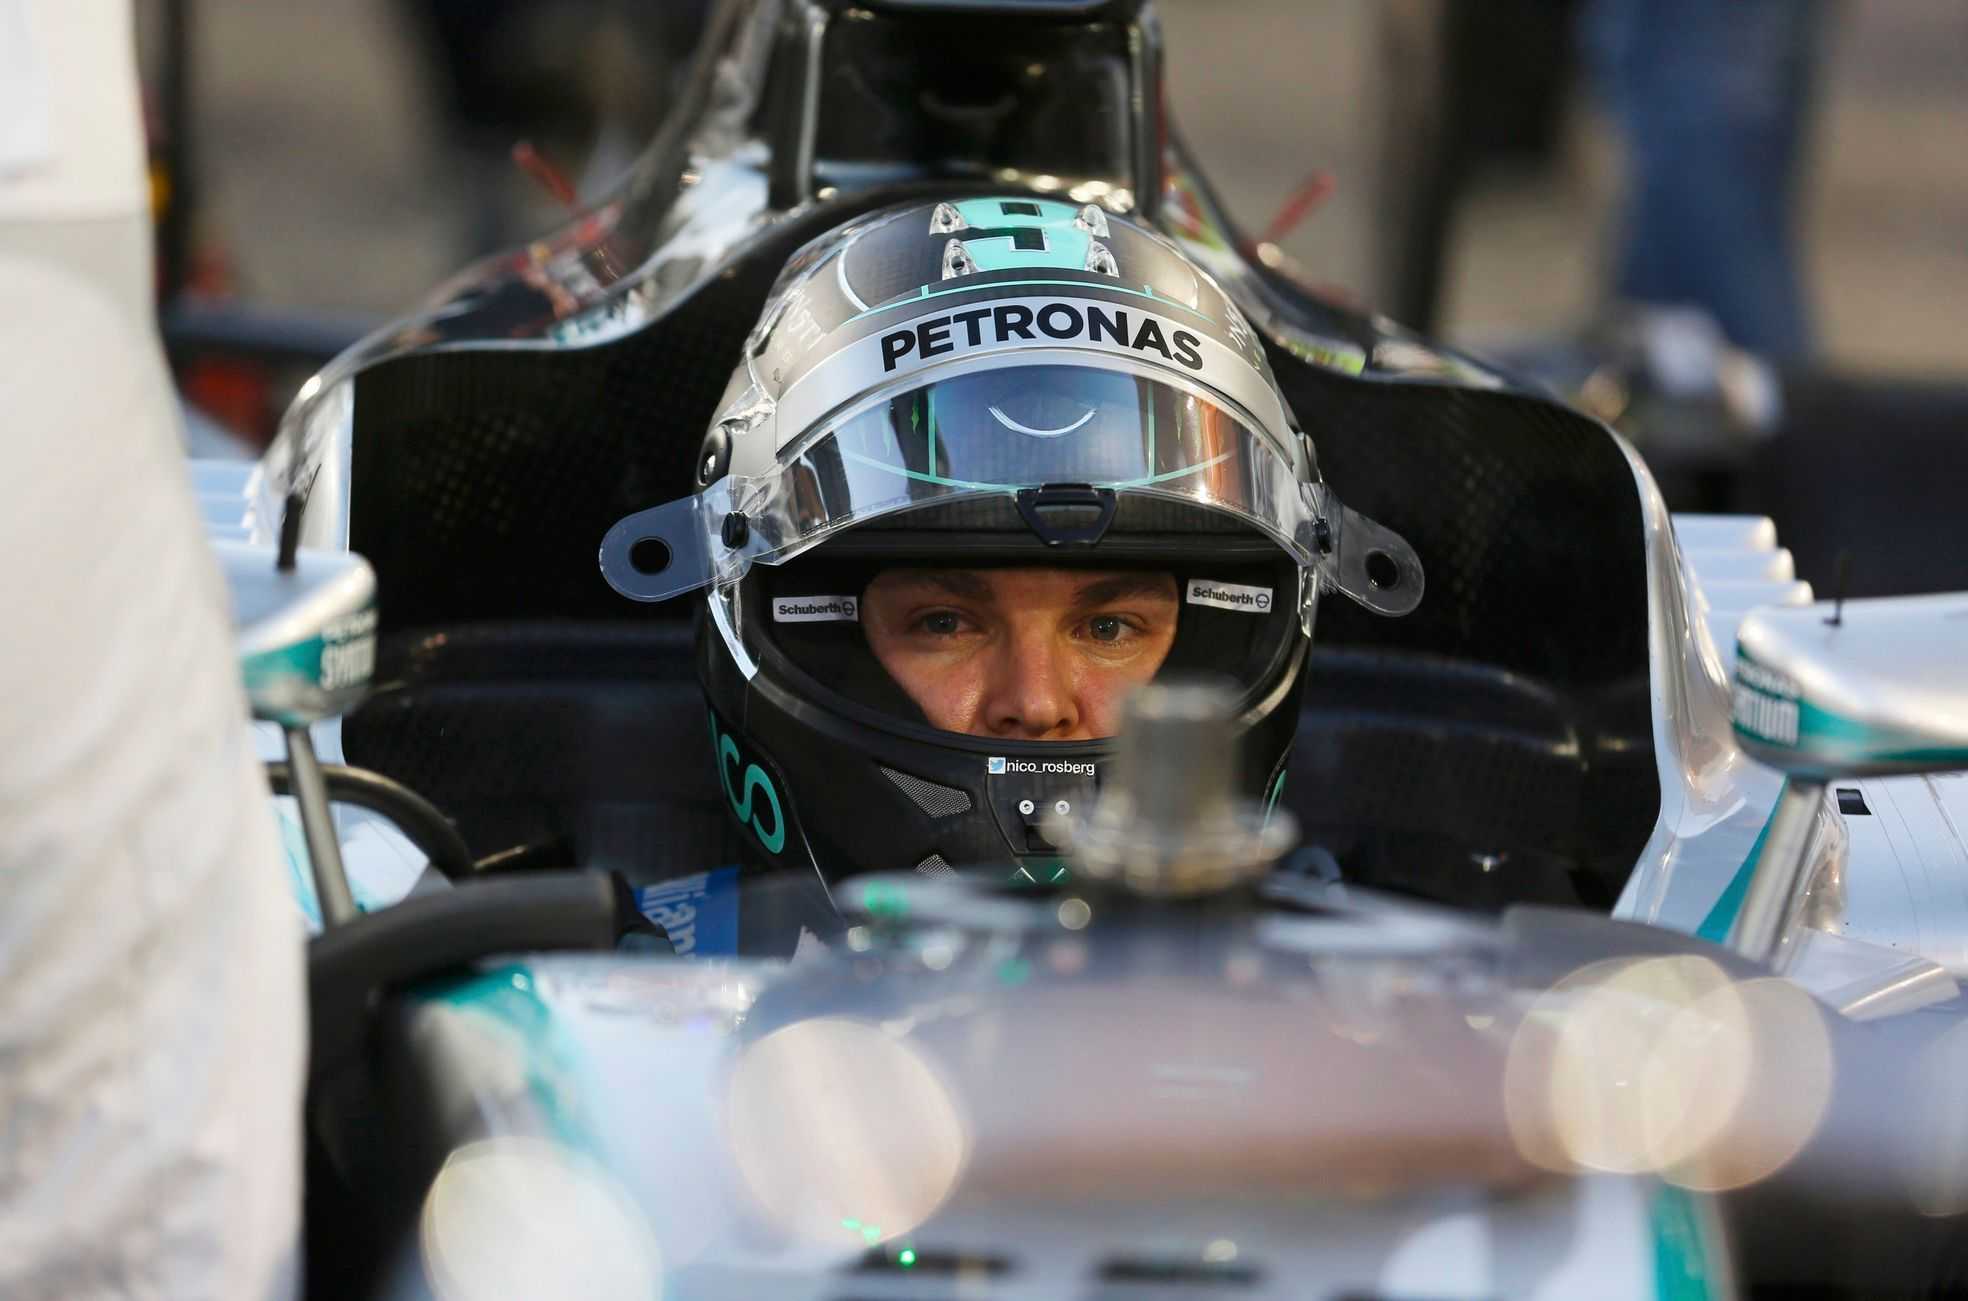 Mercedes Formula One driver Nico Rosberg of Germany sits in his car before the start of the Bahrain F1 Grand Prix at the Bahrain International Circuit (BIC) in Sakhir